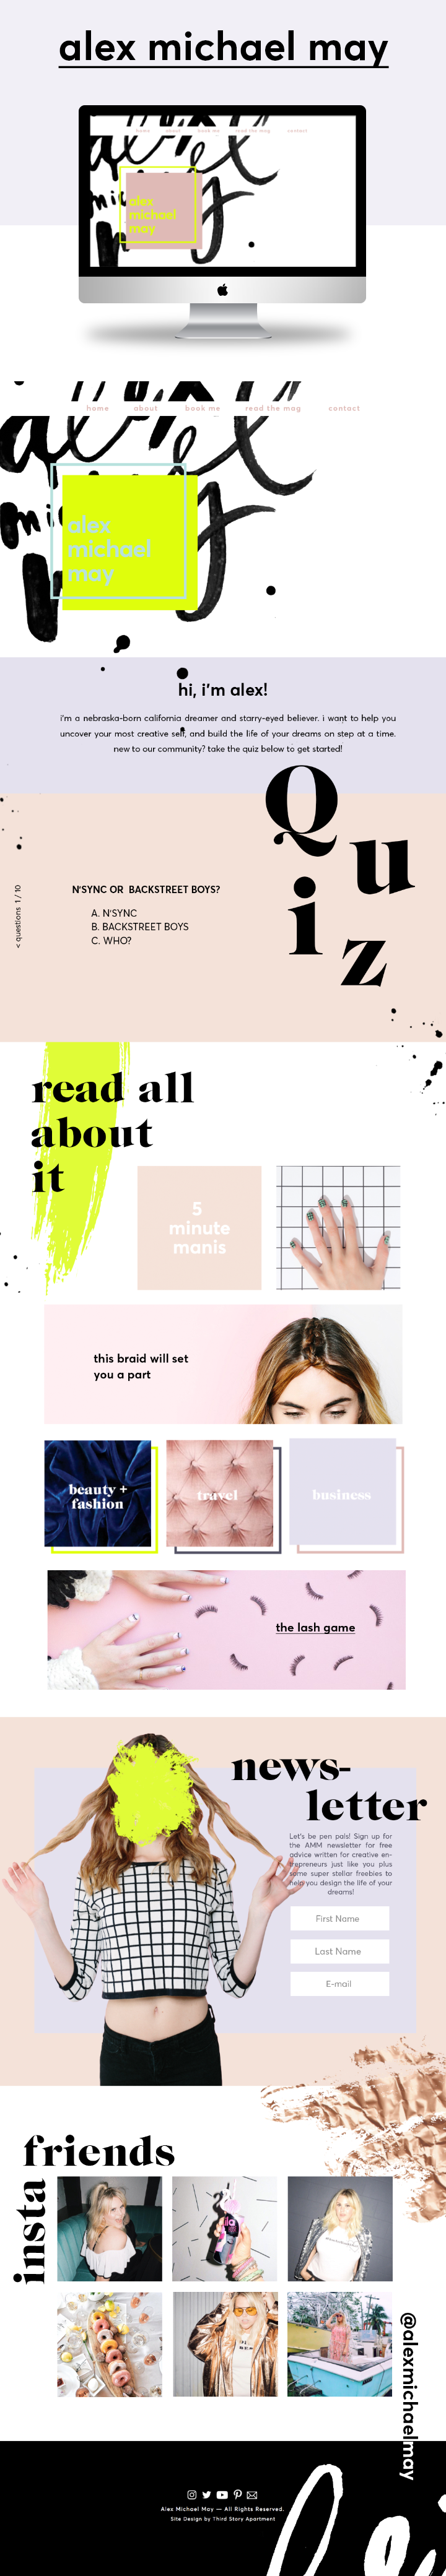 Website Design by Lindsey Eryn Clark of Third Story Apartment.     Fashion Blogger, Showit5 Website, Web design, web inspo, graphic design, texture, velvet texture, body pos blogger, cool website layout, designspiration